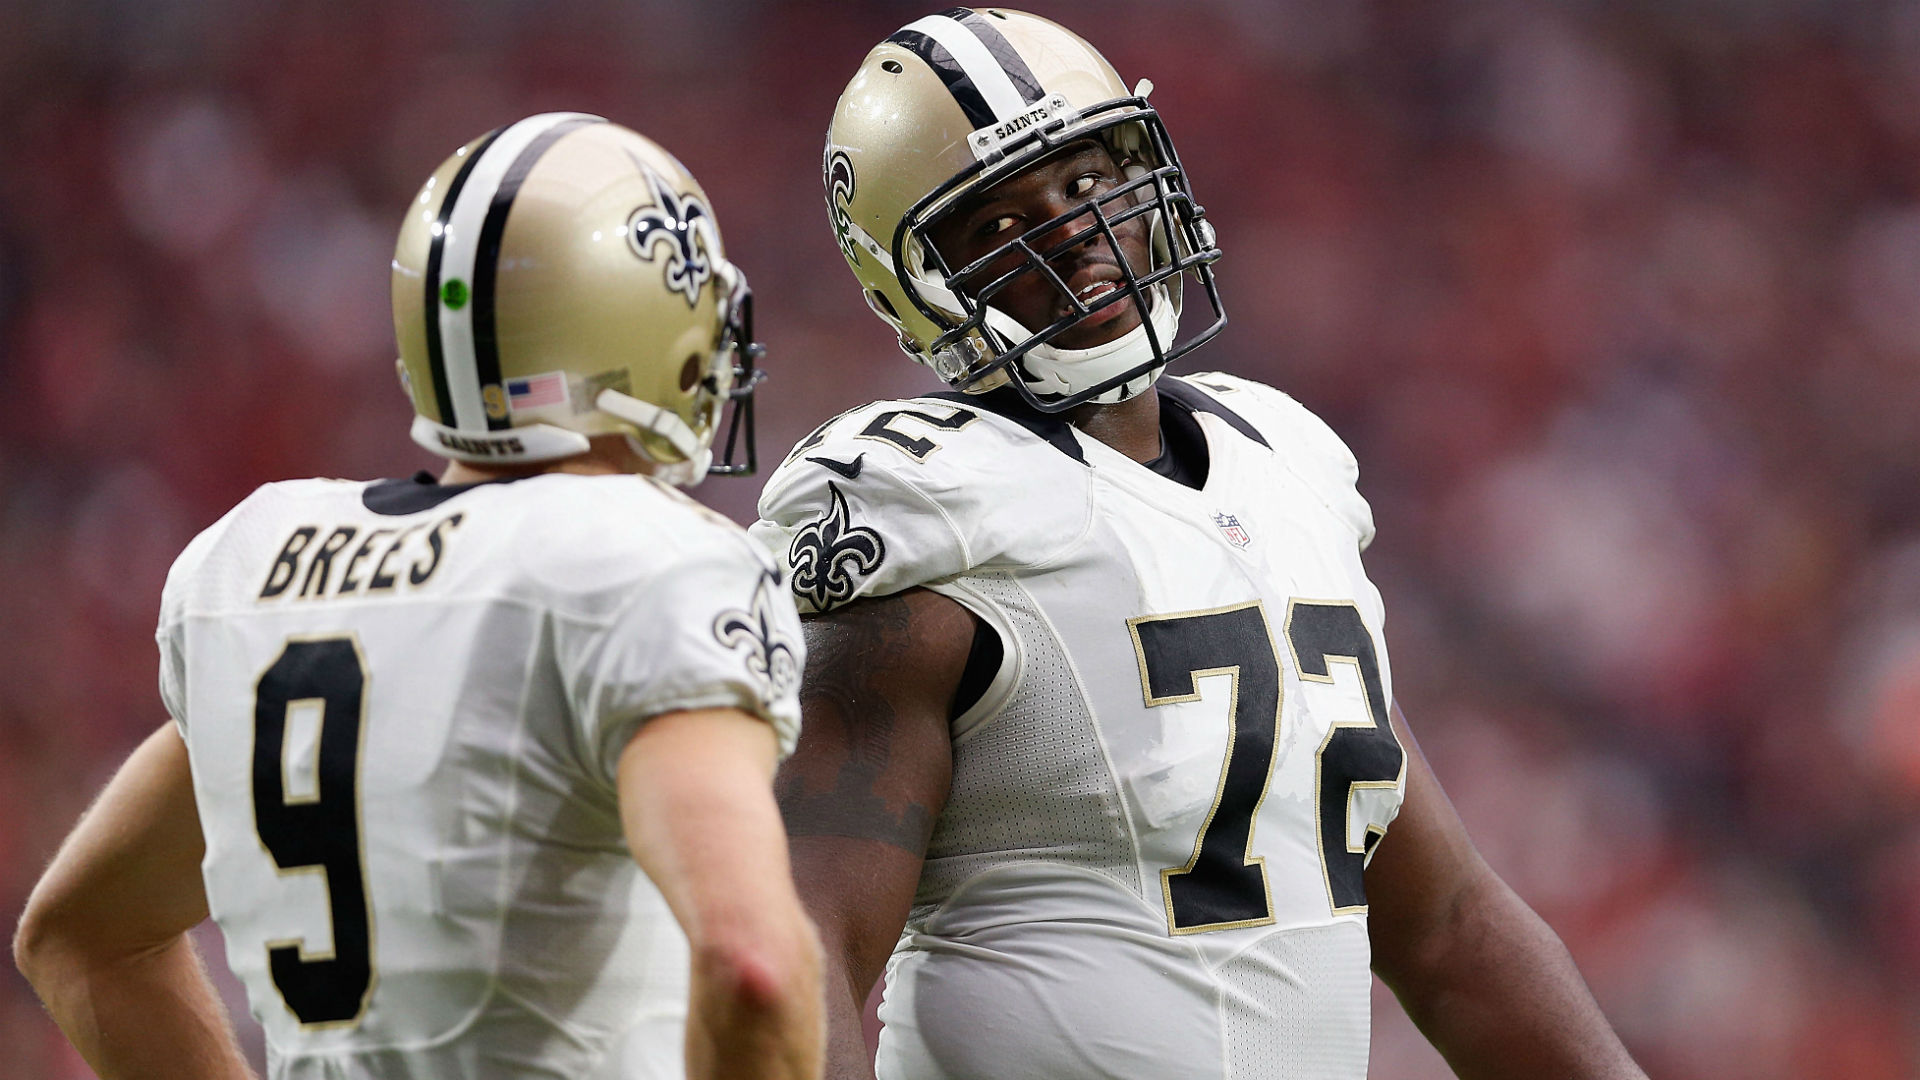 Saints LT Armstead (torn labrum) to miss 4-6 months